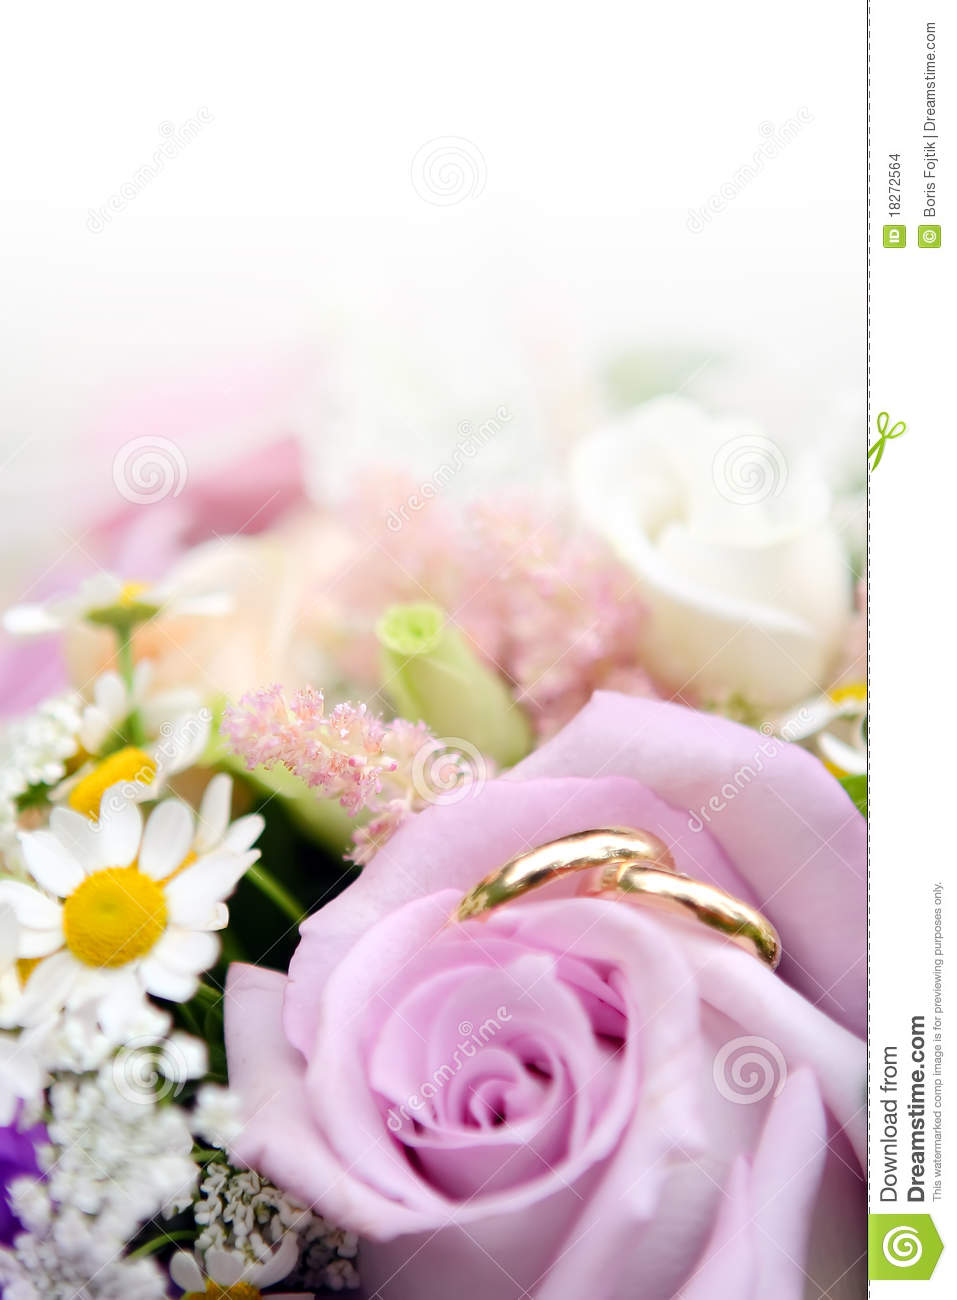 stock images wedding rings flowers image flower wedding ring Wedding Rings with flowers